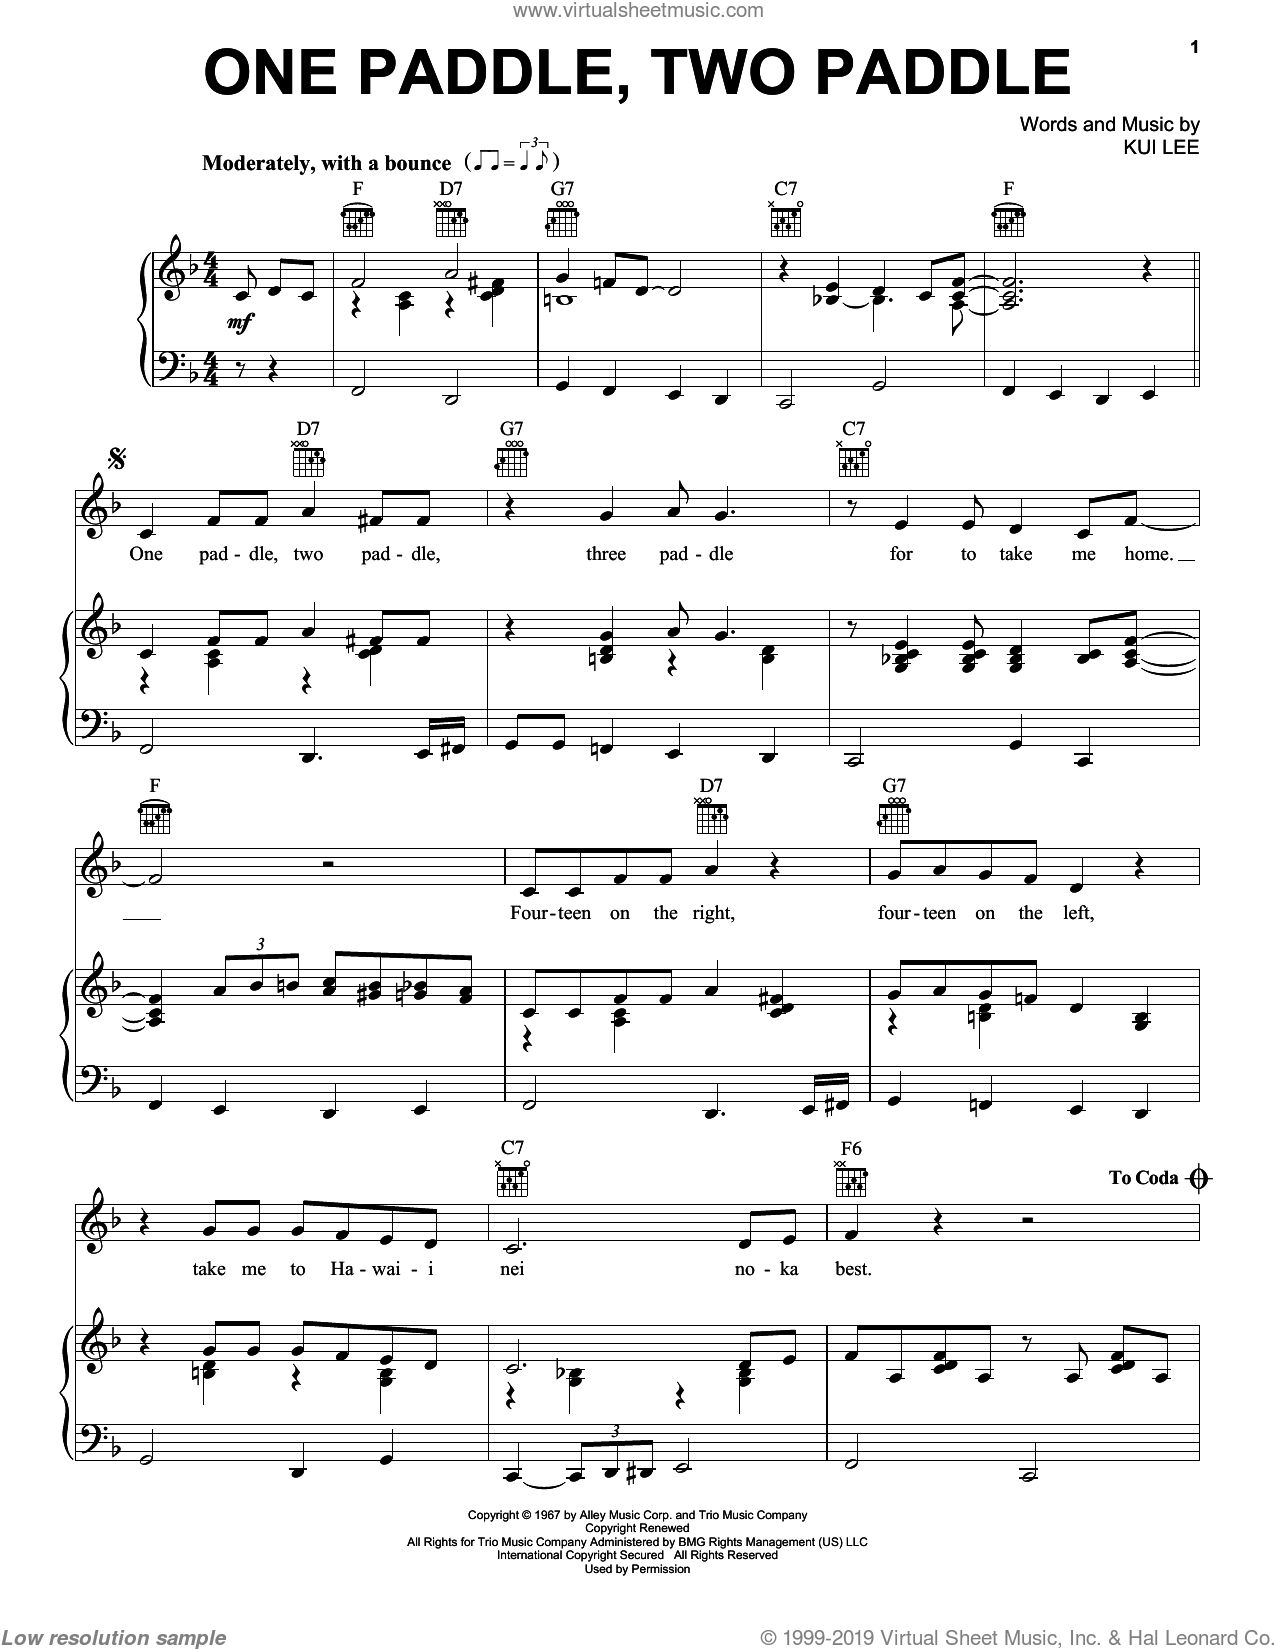 One Paddle, Two Paddle sheet music for voice, piano or guitar by Don Ho, Ray Conniff and Kui Lee, intermediate skill level